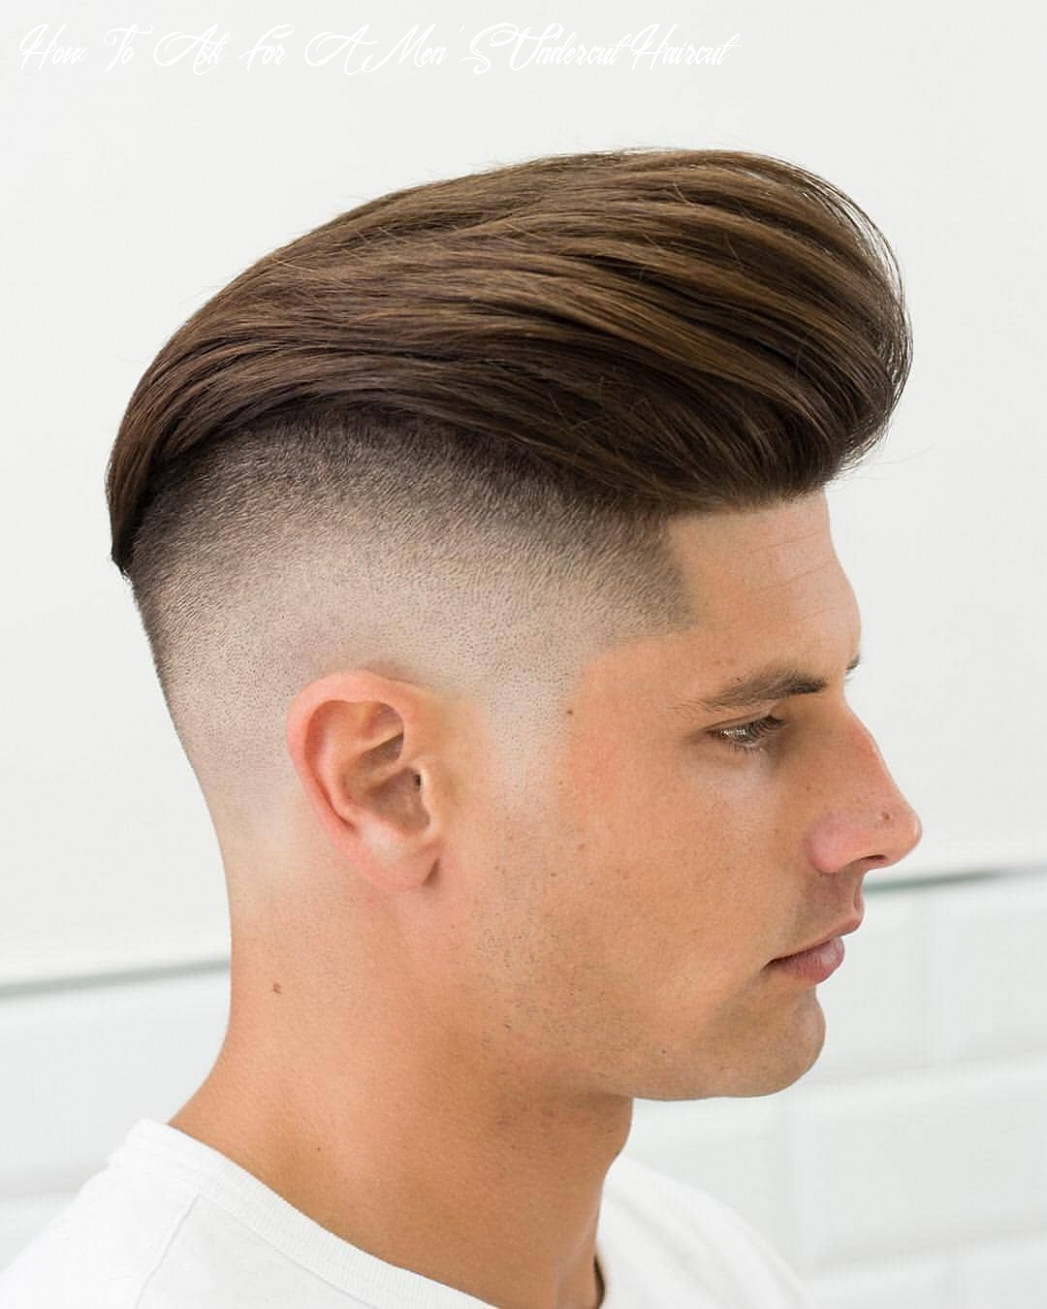 How to ask for a haircut: decoding hair terminology for men